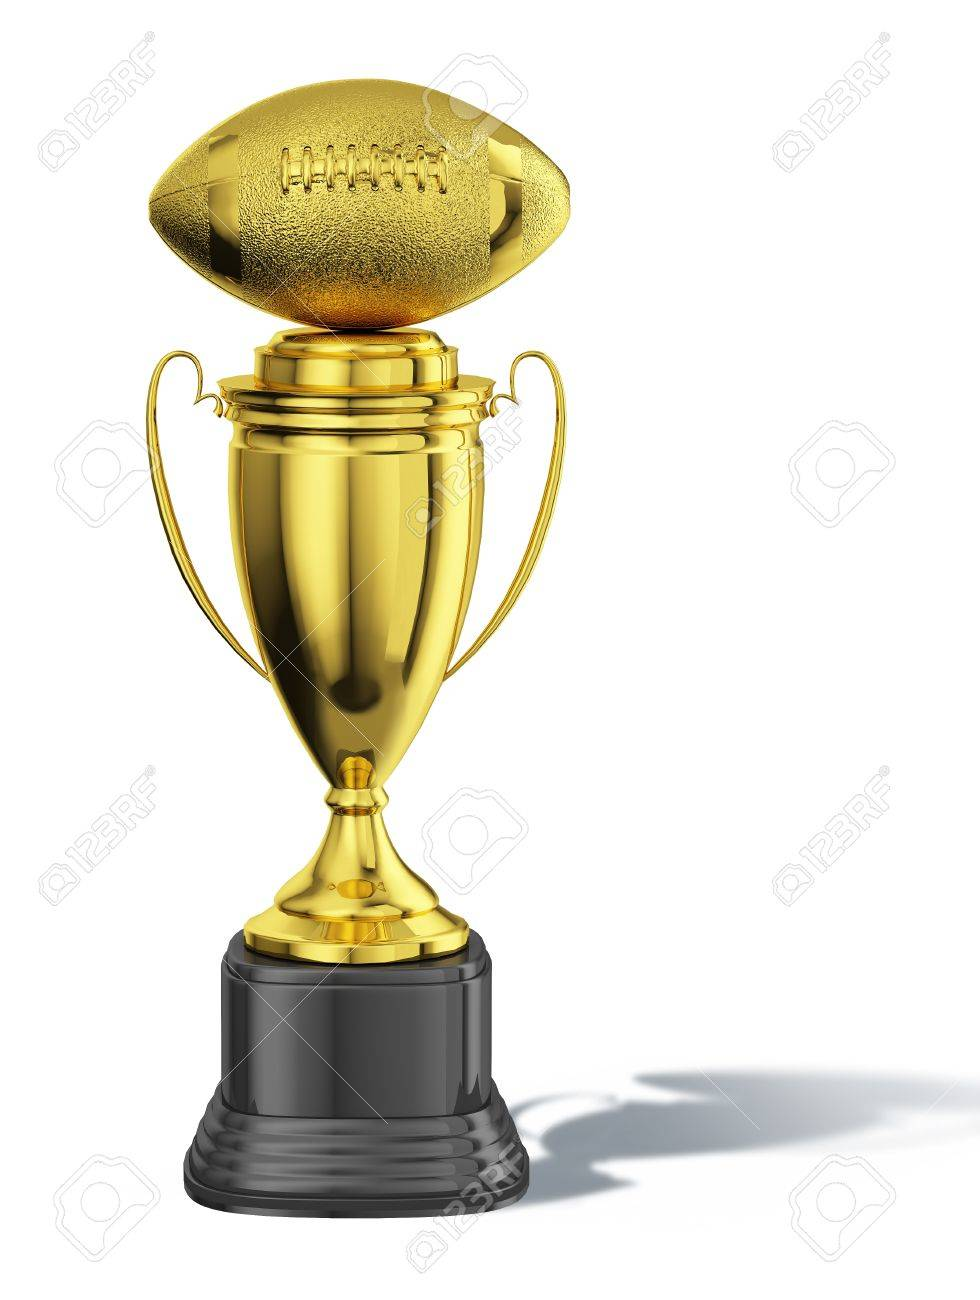 Stock Photo Trophy Cup With An American Football Ball At The Top All In Gold With Black Basement